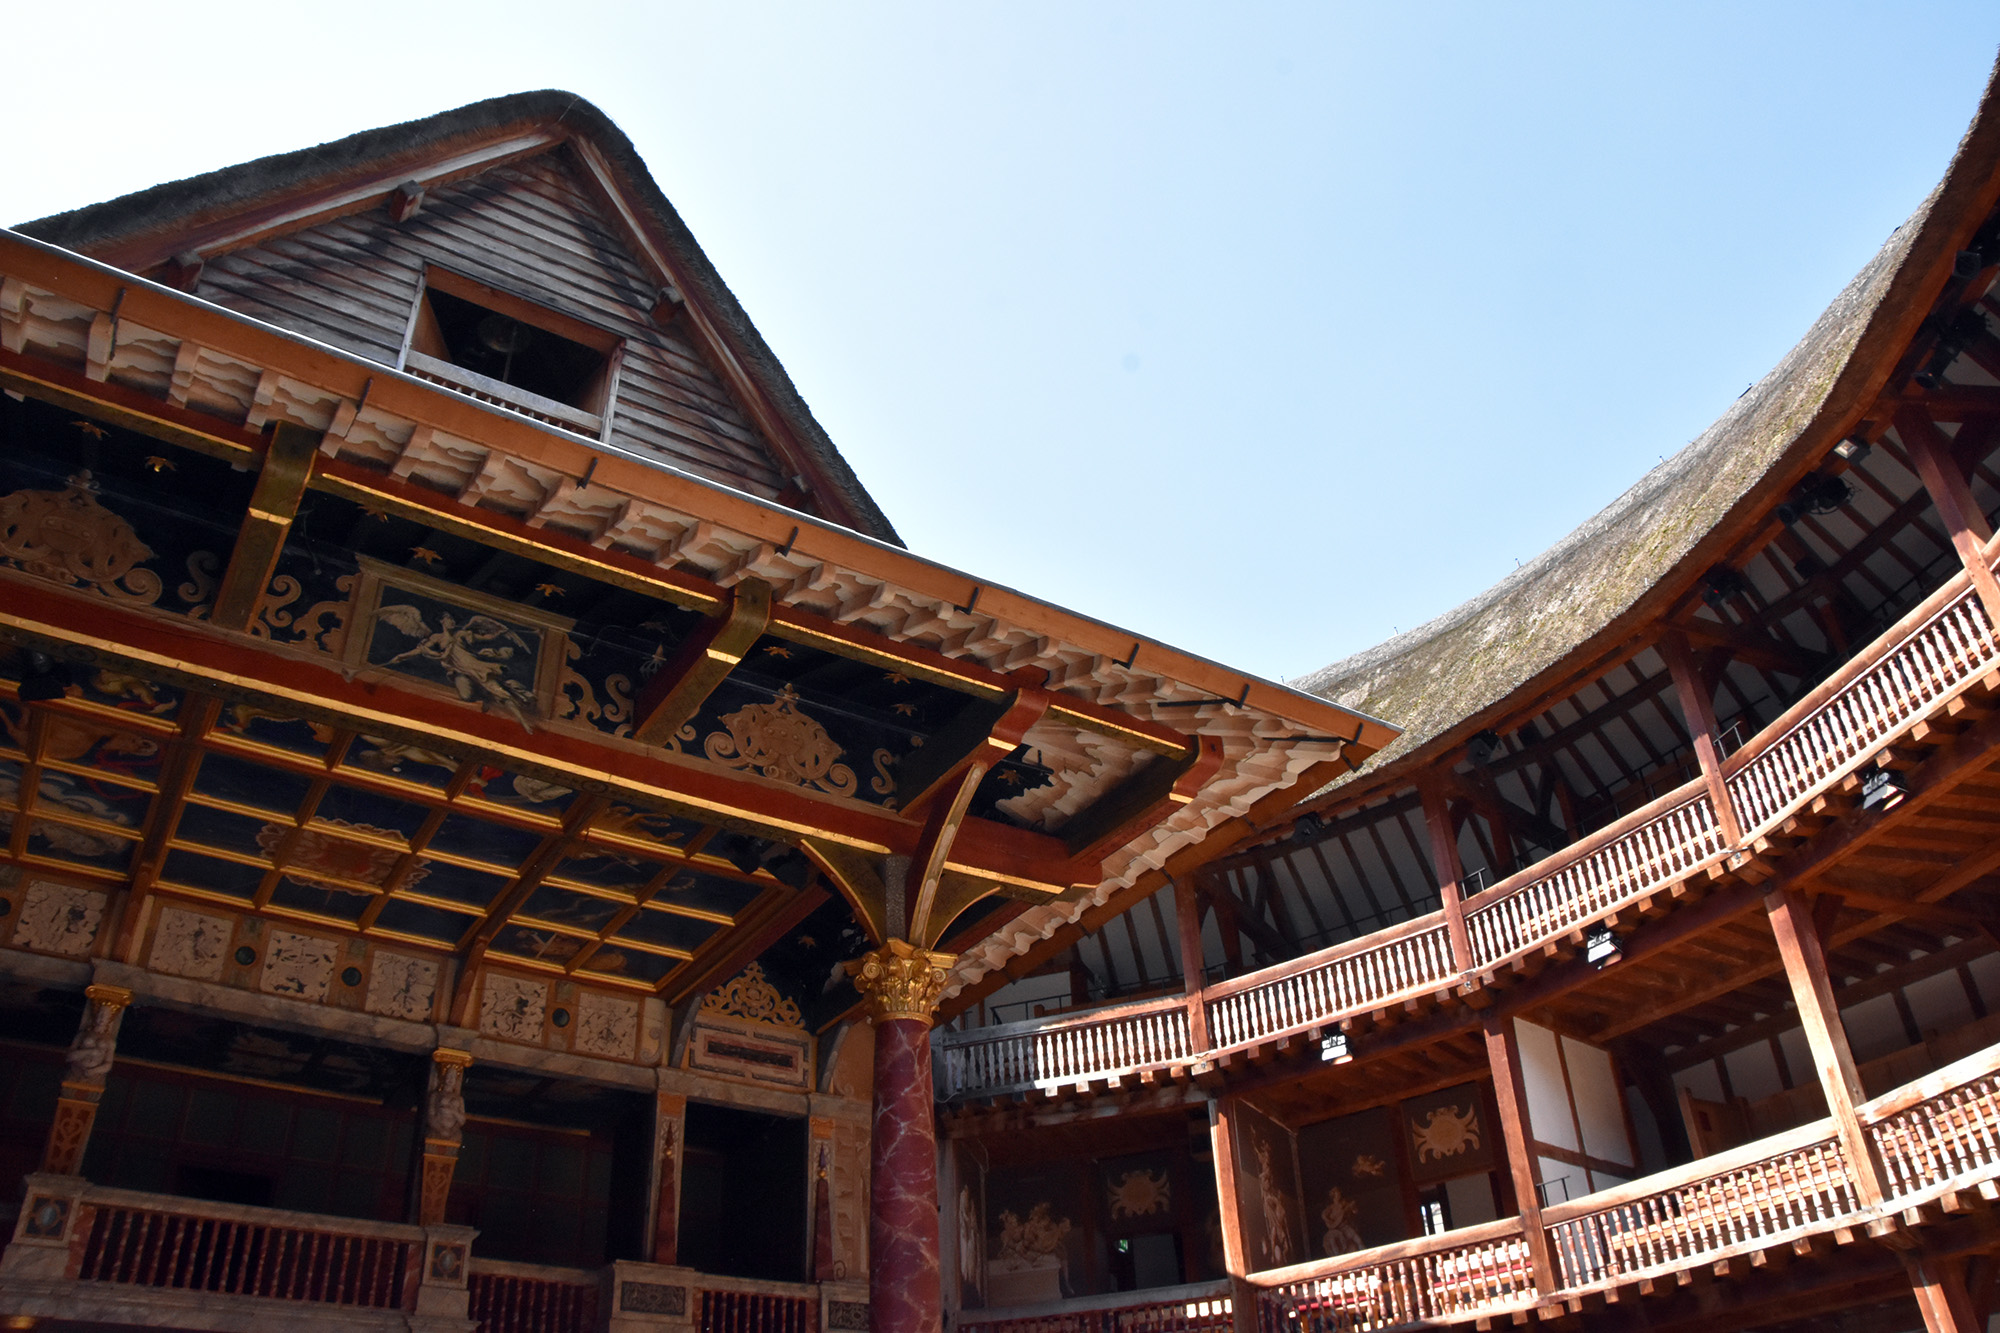 A soft blue sky shines above the inside of the Globe Theatre, casting light on the wooden galleries.